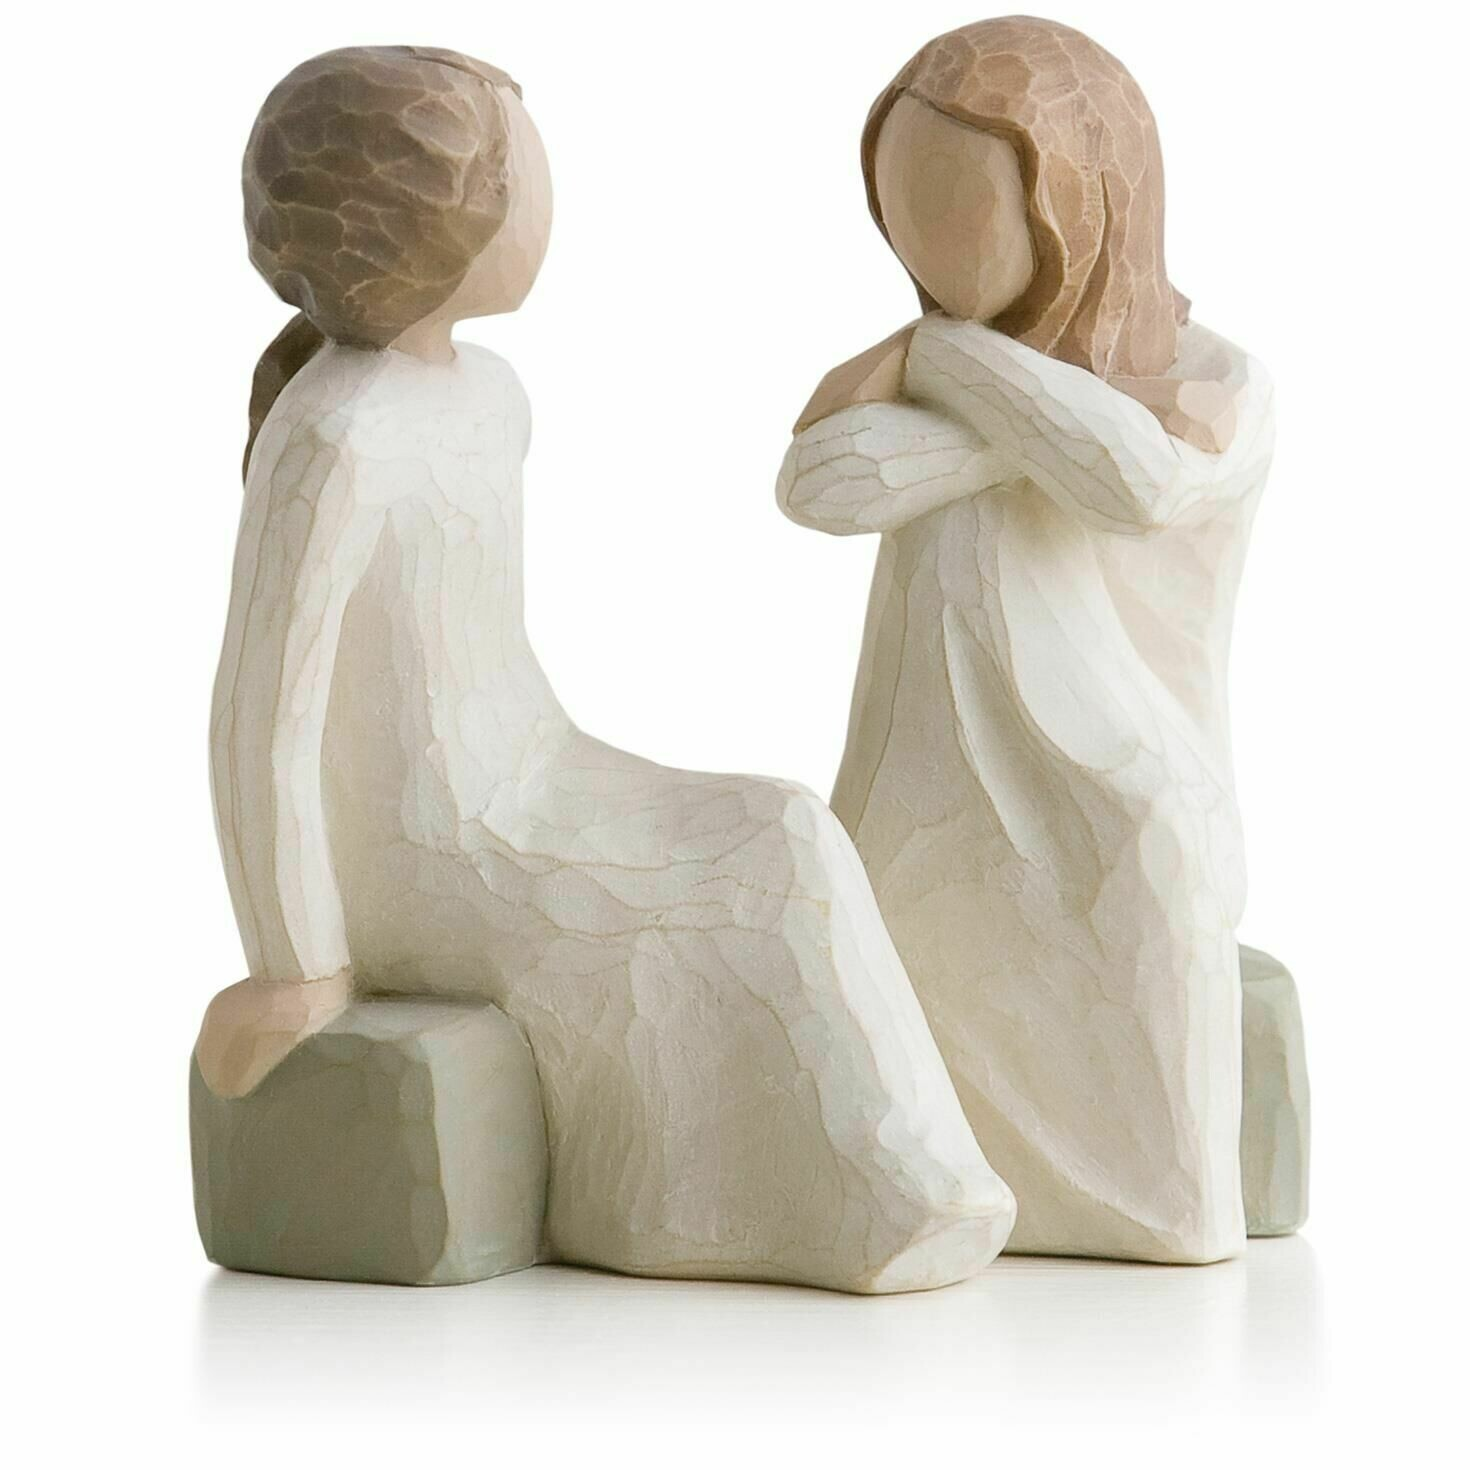 Willow Tree: Heart and Soul - 2 Girls Sitting Facing Each Other